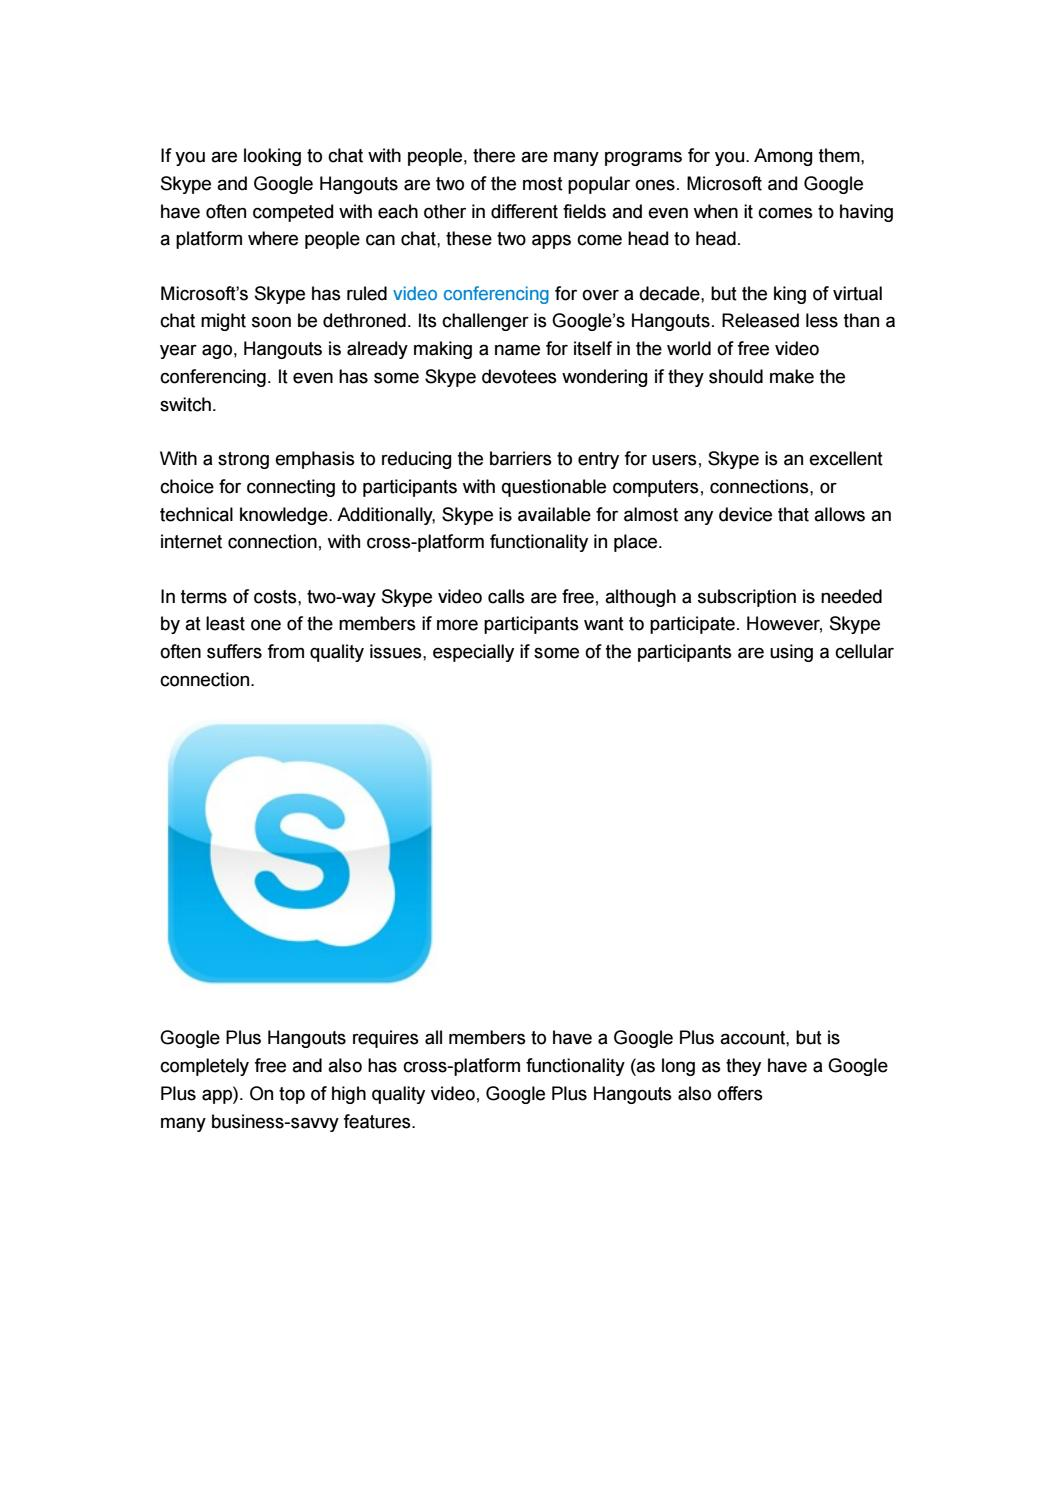 Skype or Google Hangouts, Which One Is Better? by ezTalks - issuu